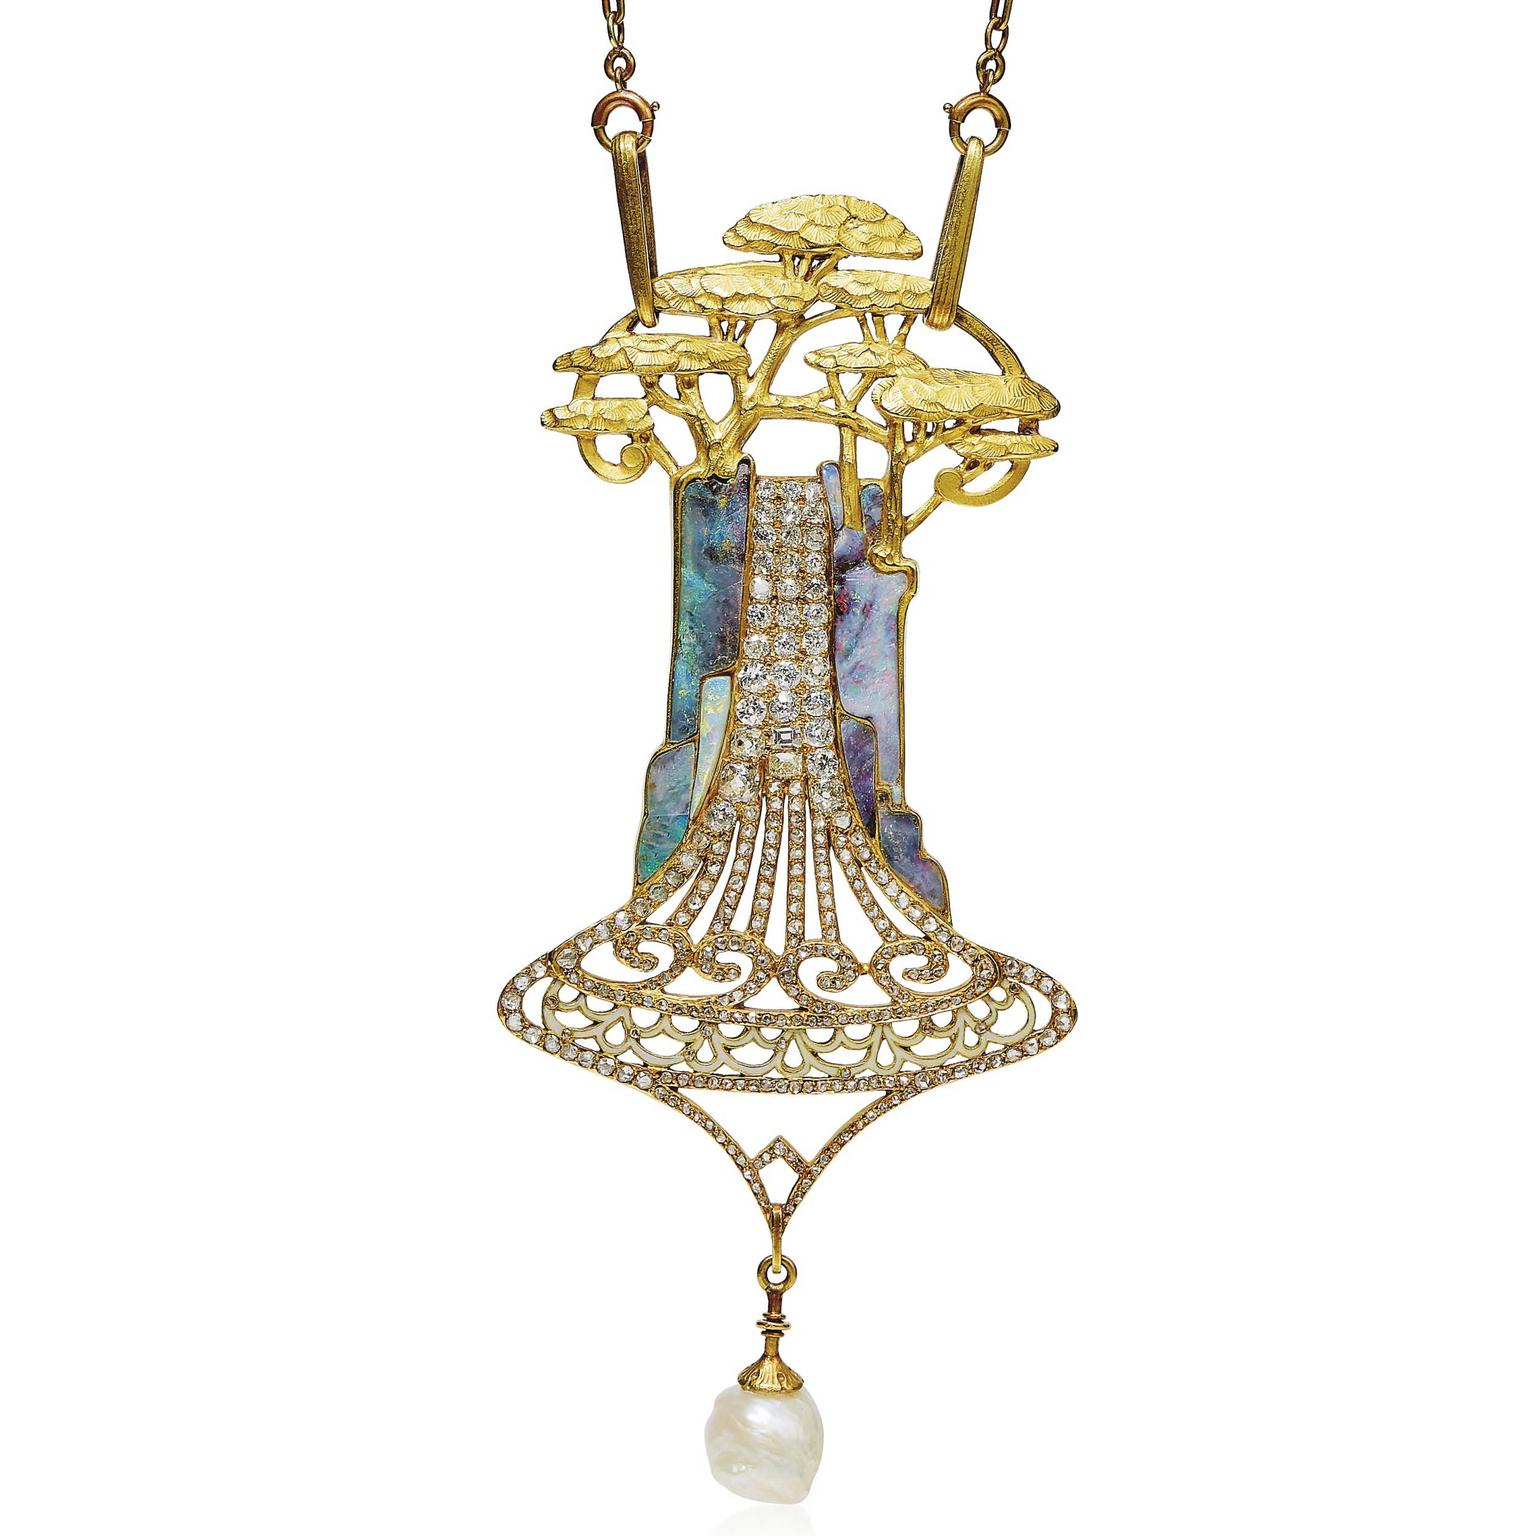 ART NOUVEAU OPAL DIAMOND AND ENAMEL CEDARS PENDANT NECKLACE BY GEORGES FOUQUET